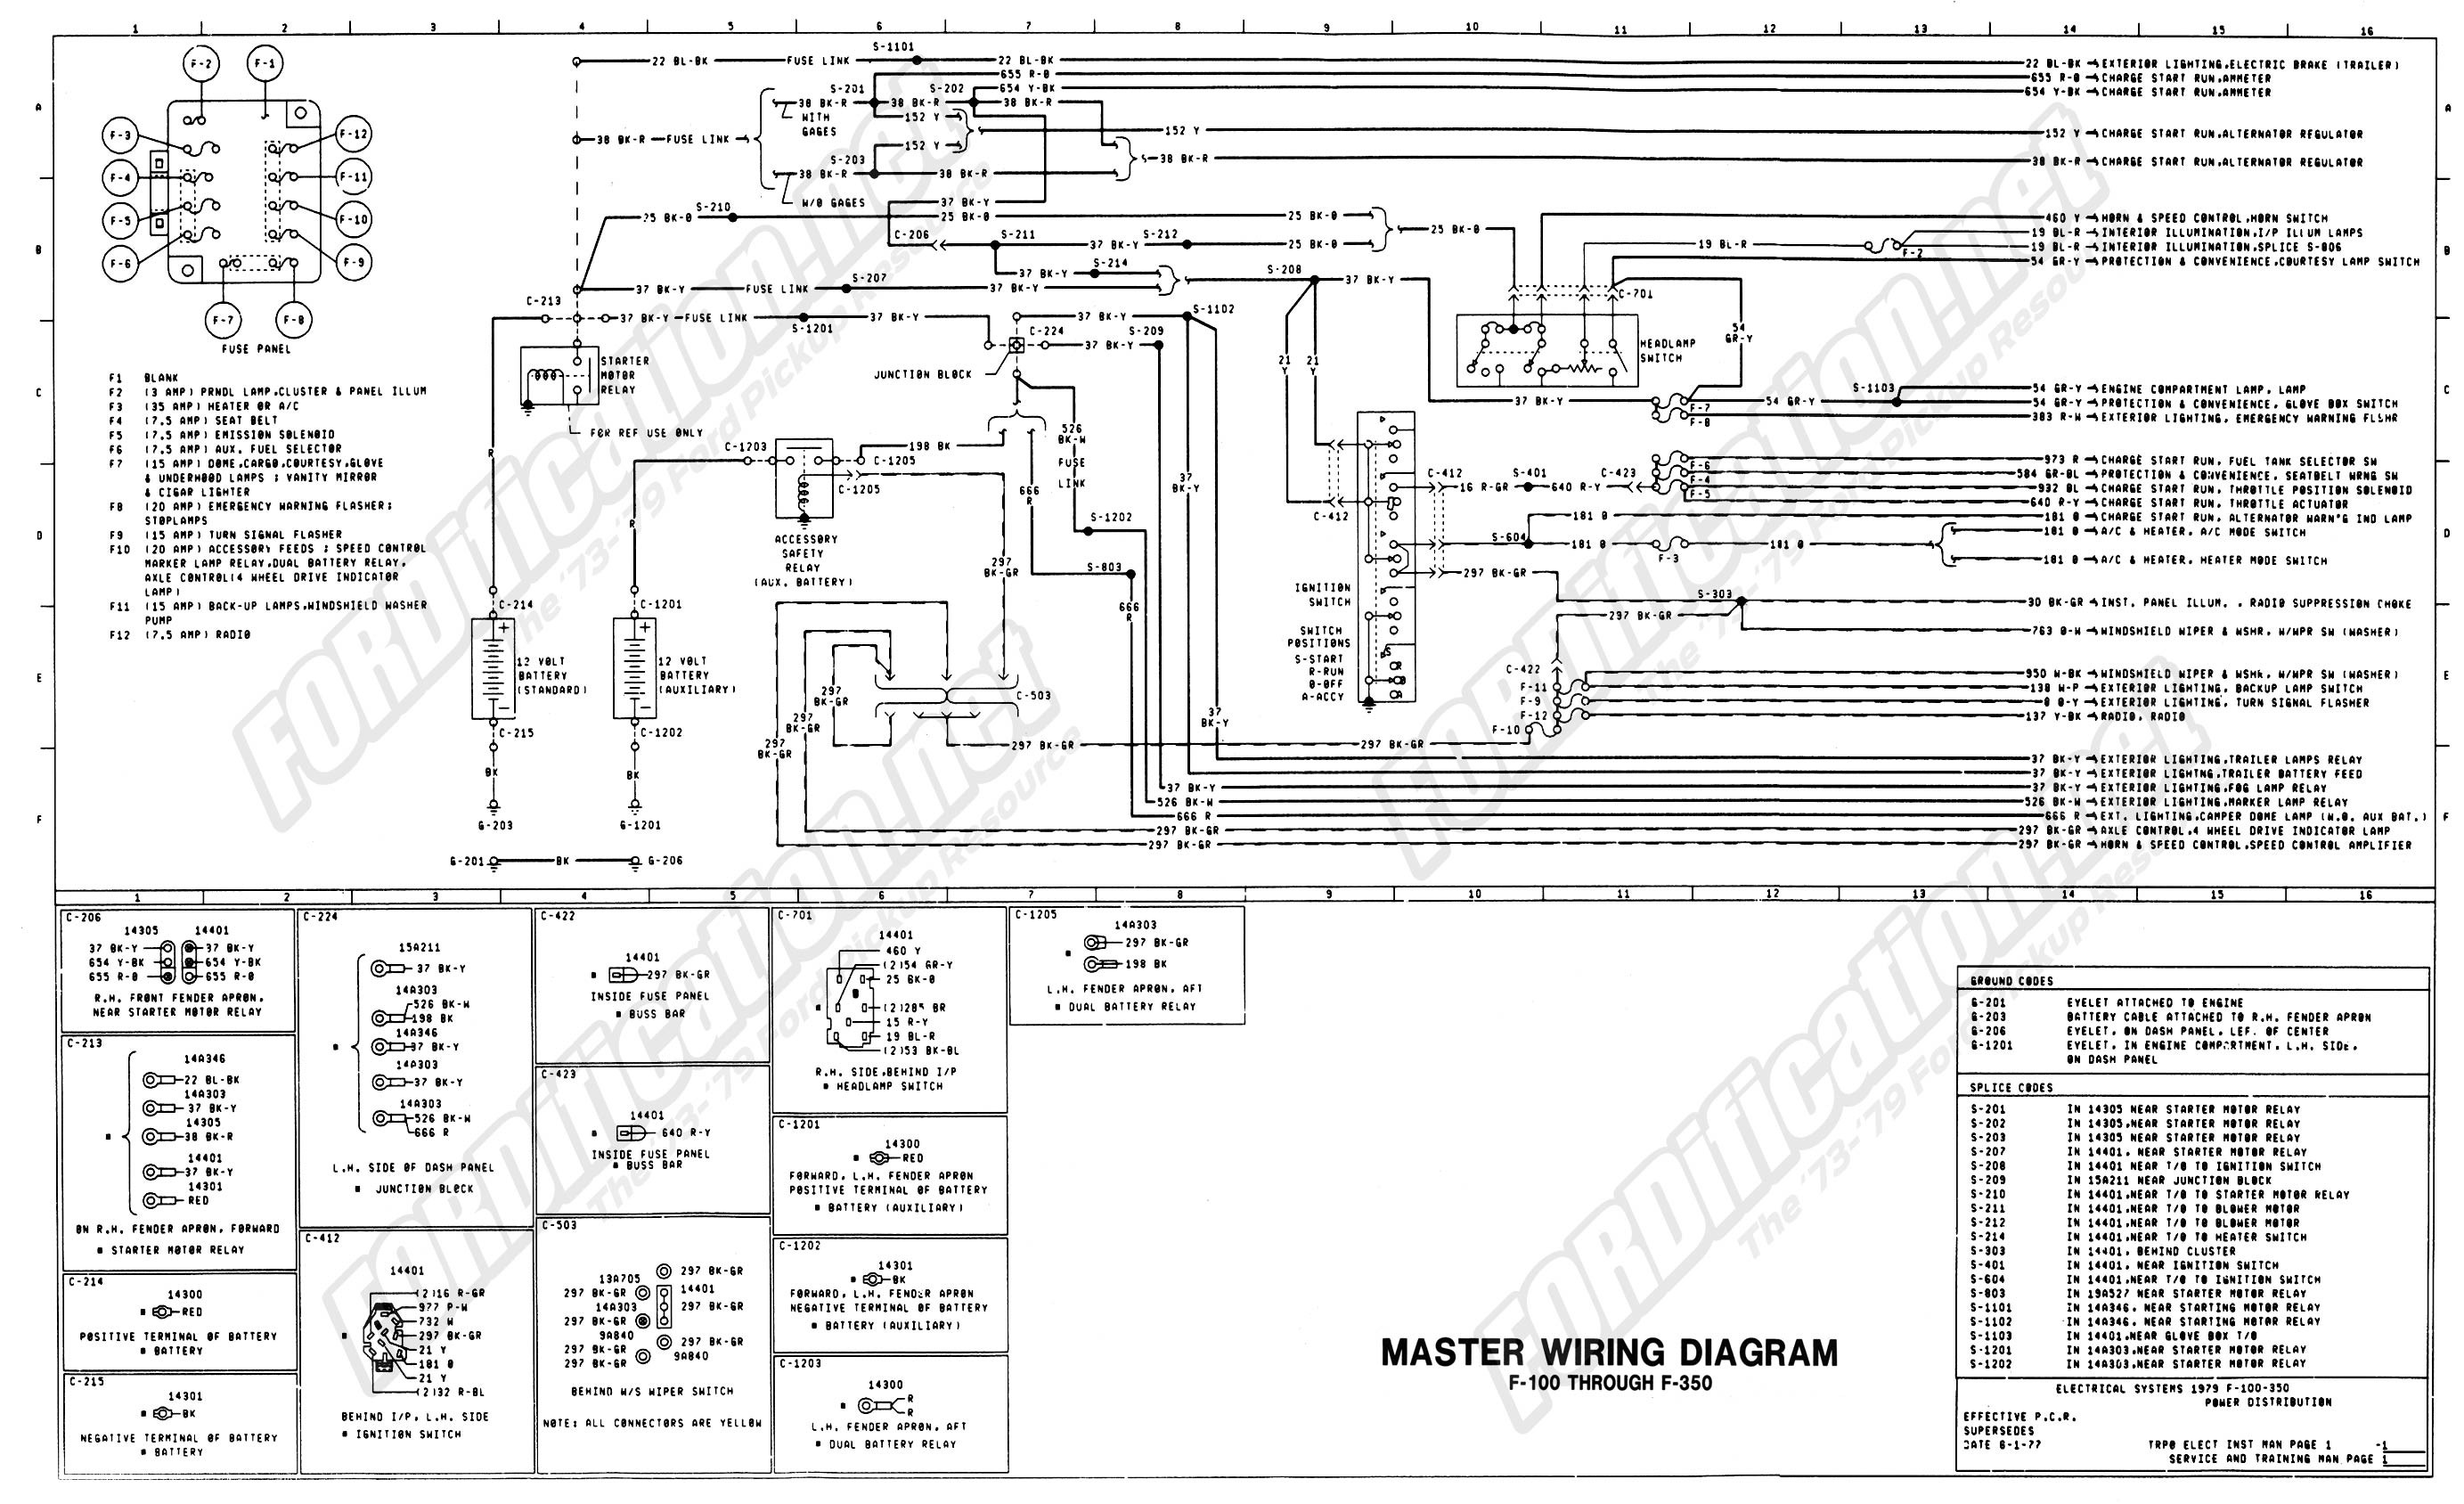 1979 ford f150 engine diagram electrical work wiring diagram u2022 rh aglabs co